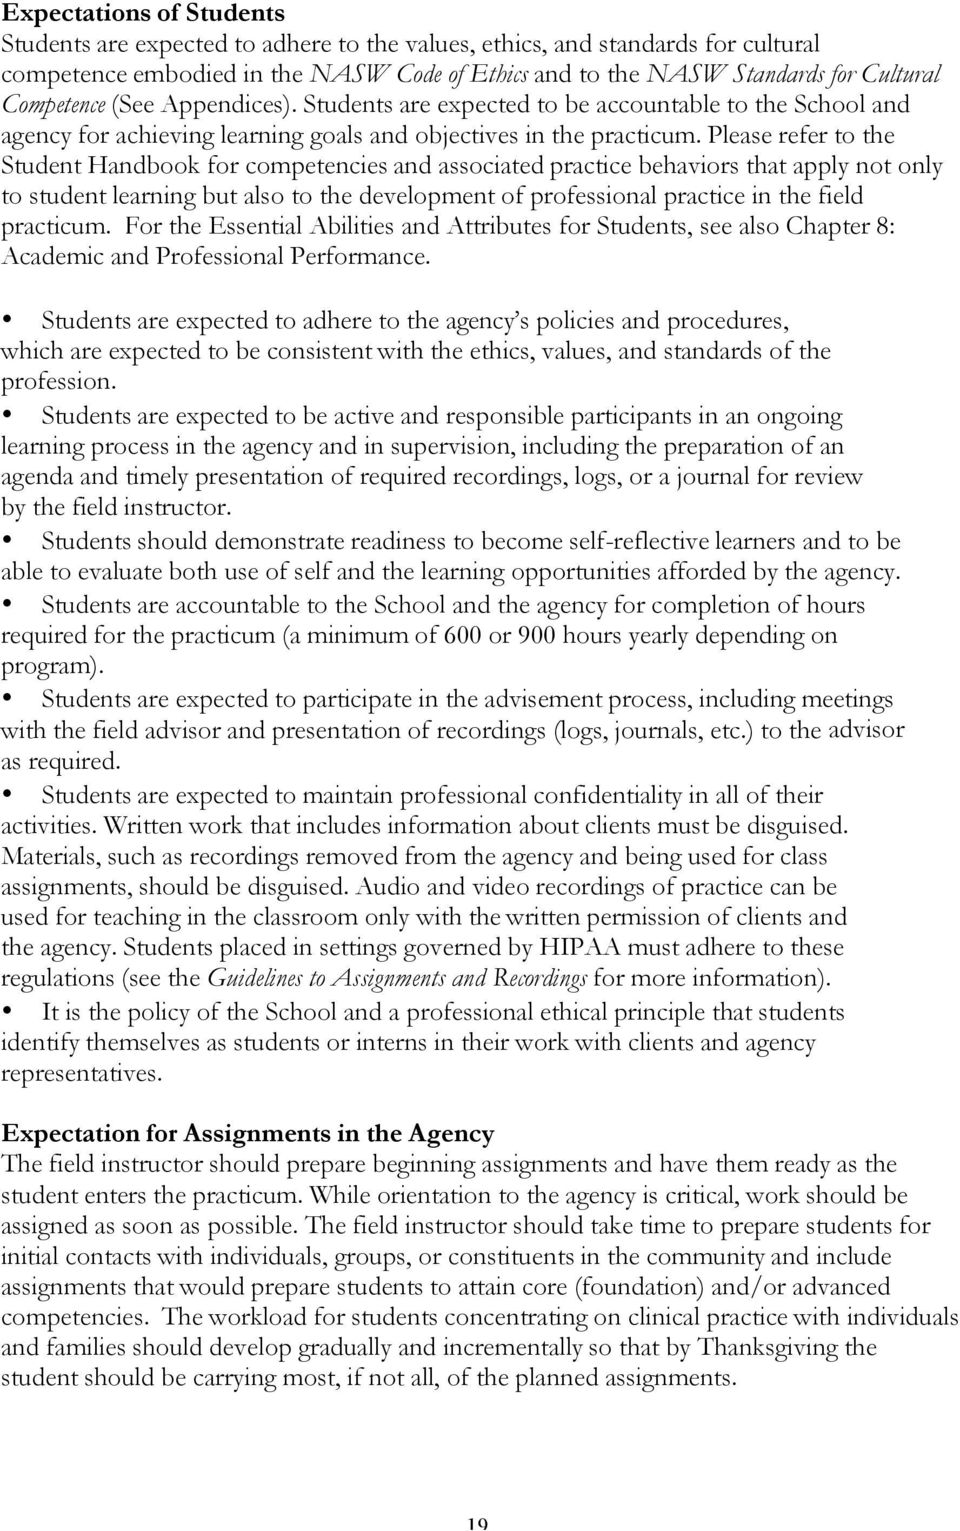 Please refer to the Student Handbook for competencies and associated practice behaviors that apply not only to student learning but also to the development of professional practice in the field